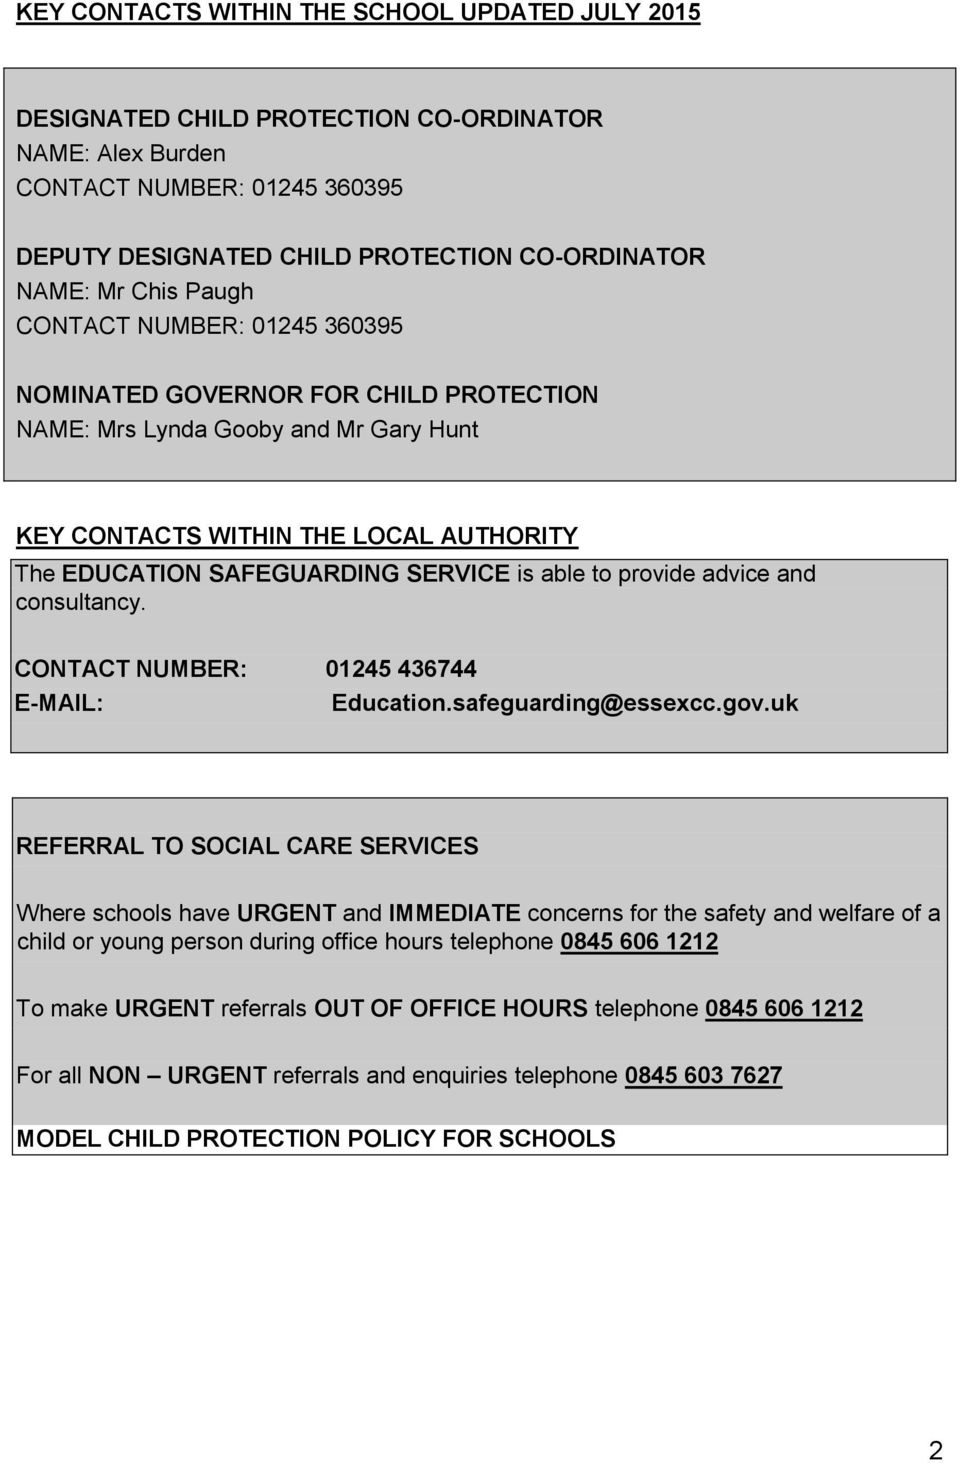 provide advice and consultancy. CONTACT NUMBER: 01245 436744 E-MAIL: Education.safeguarding@essexcc.gov.